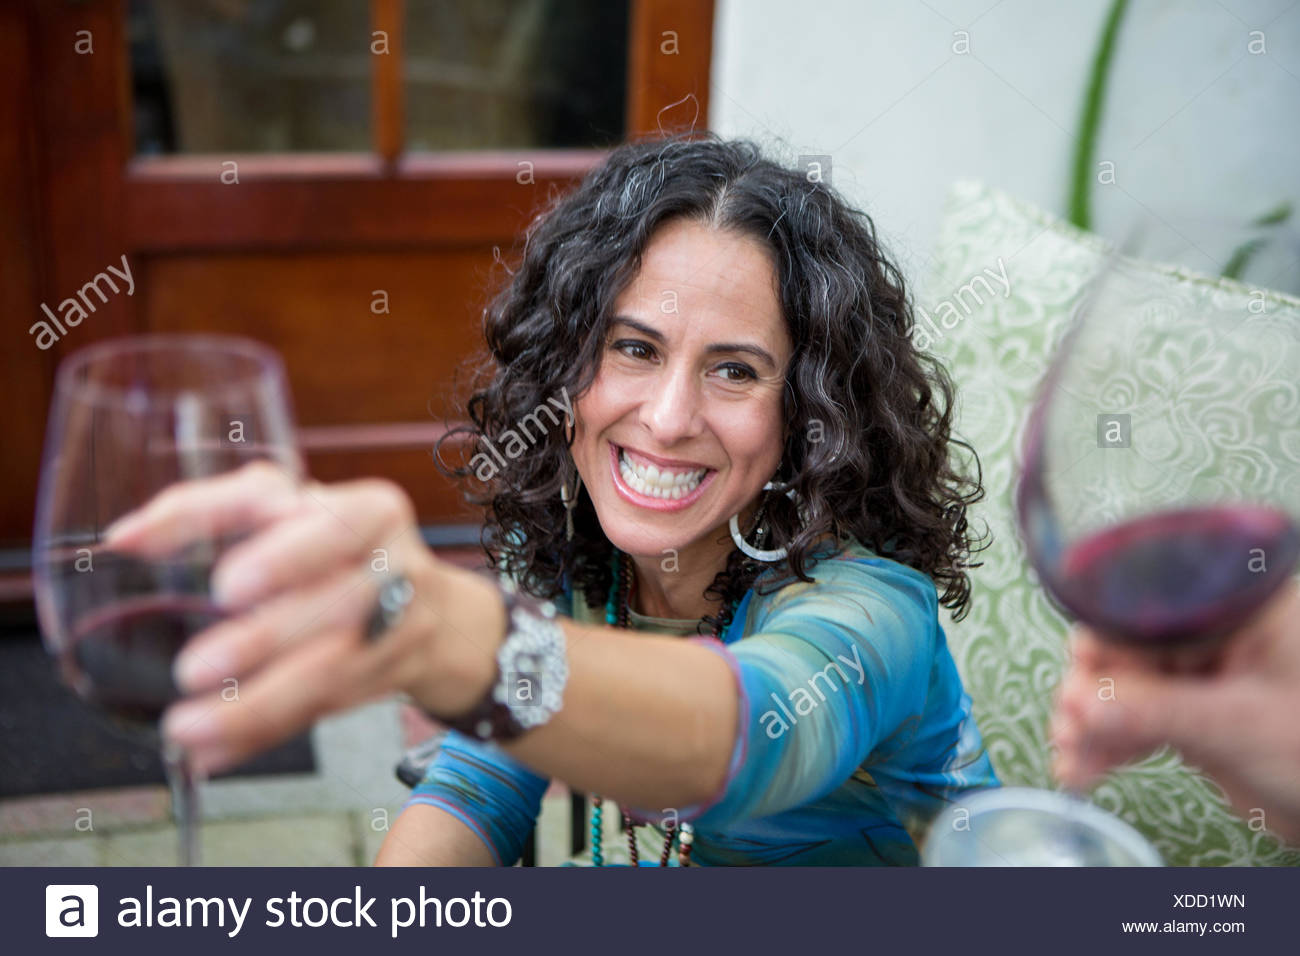 Over shoulder view of mature women making red wine toast at garden party - Stock Image